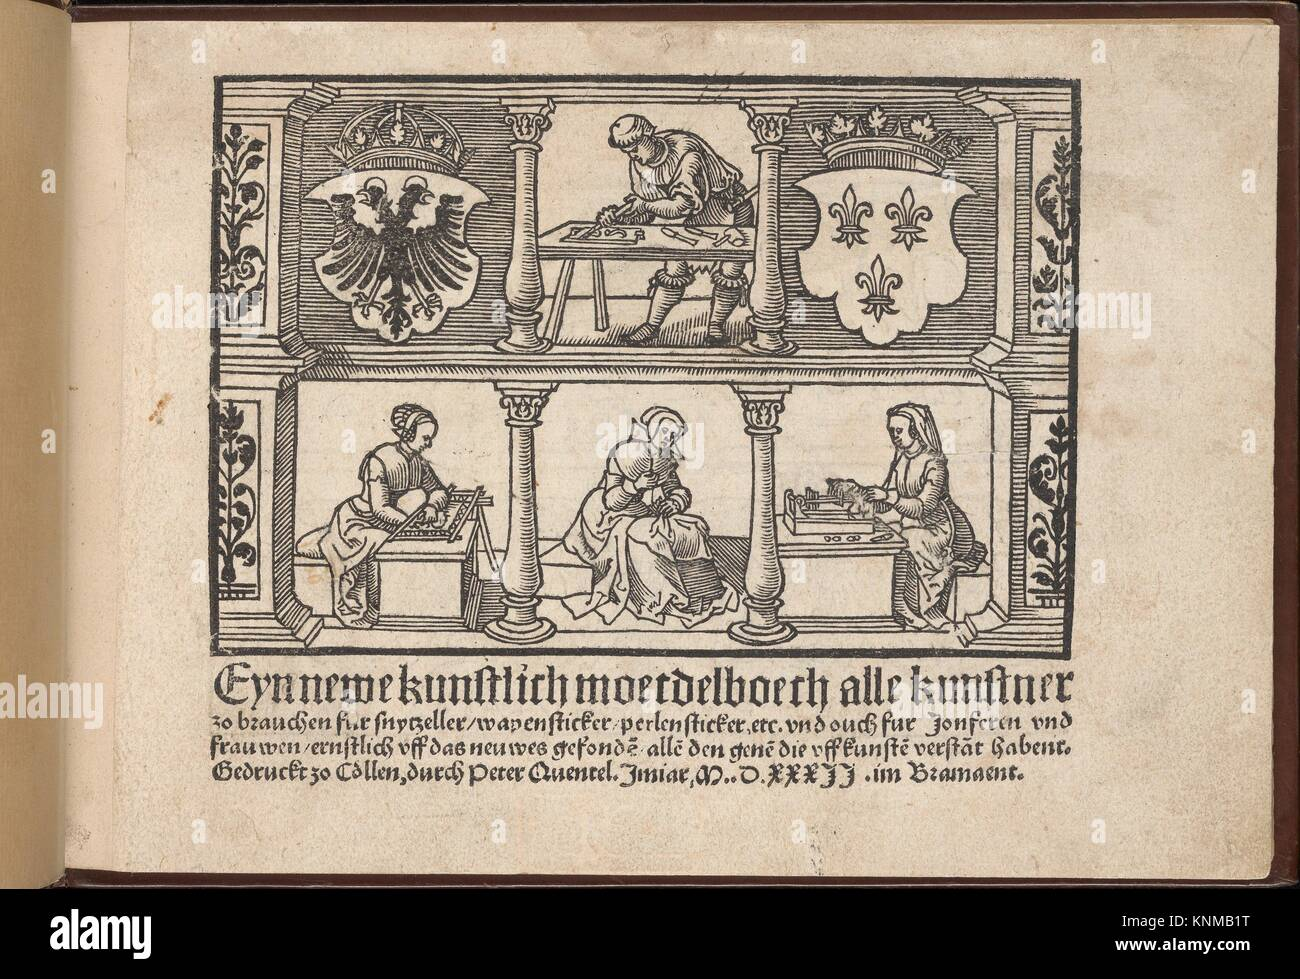 Eyn Newe kunstlich moetdelboech alle kunst. Publisher: Peter Quentel (German, active Cologne, 1518-46) , Cologne; - Stock Image